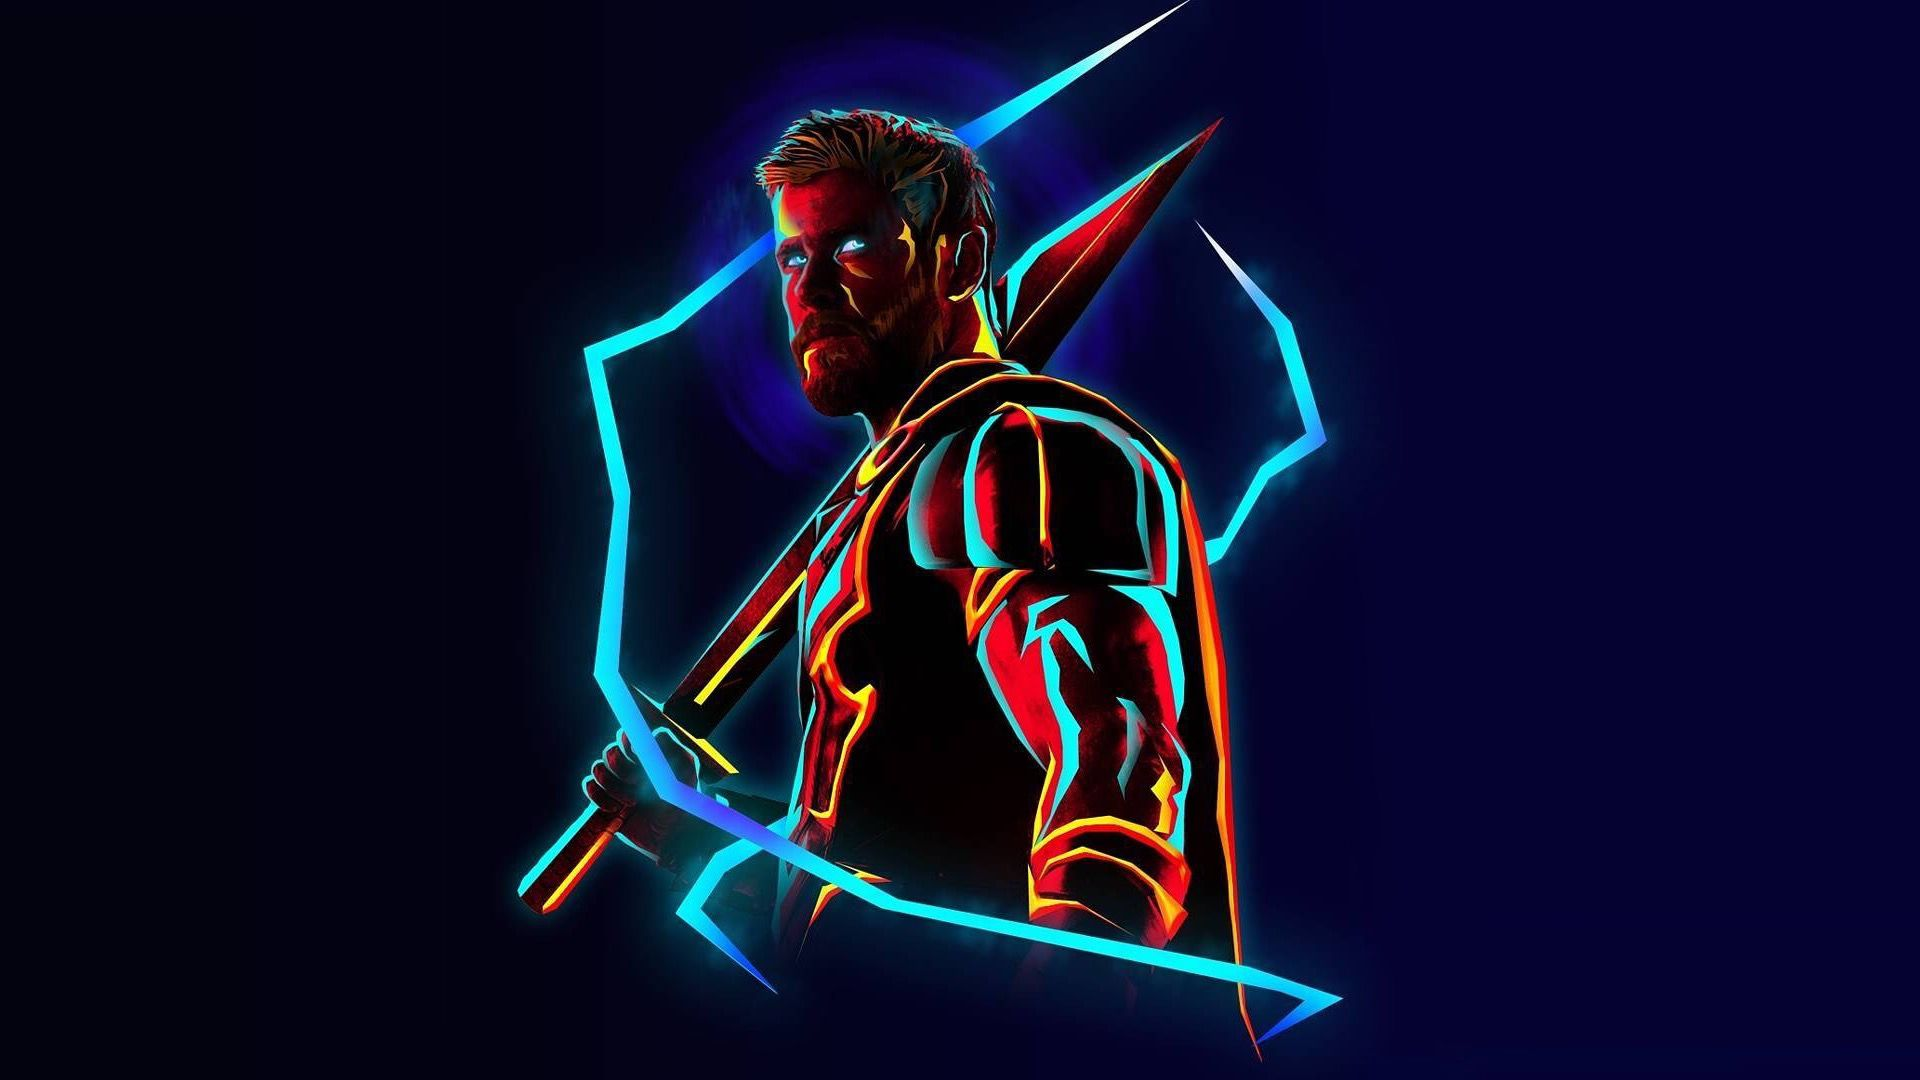 Neon Avengers 1920x1080 Desktop Wallpapers Based On Artwork By